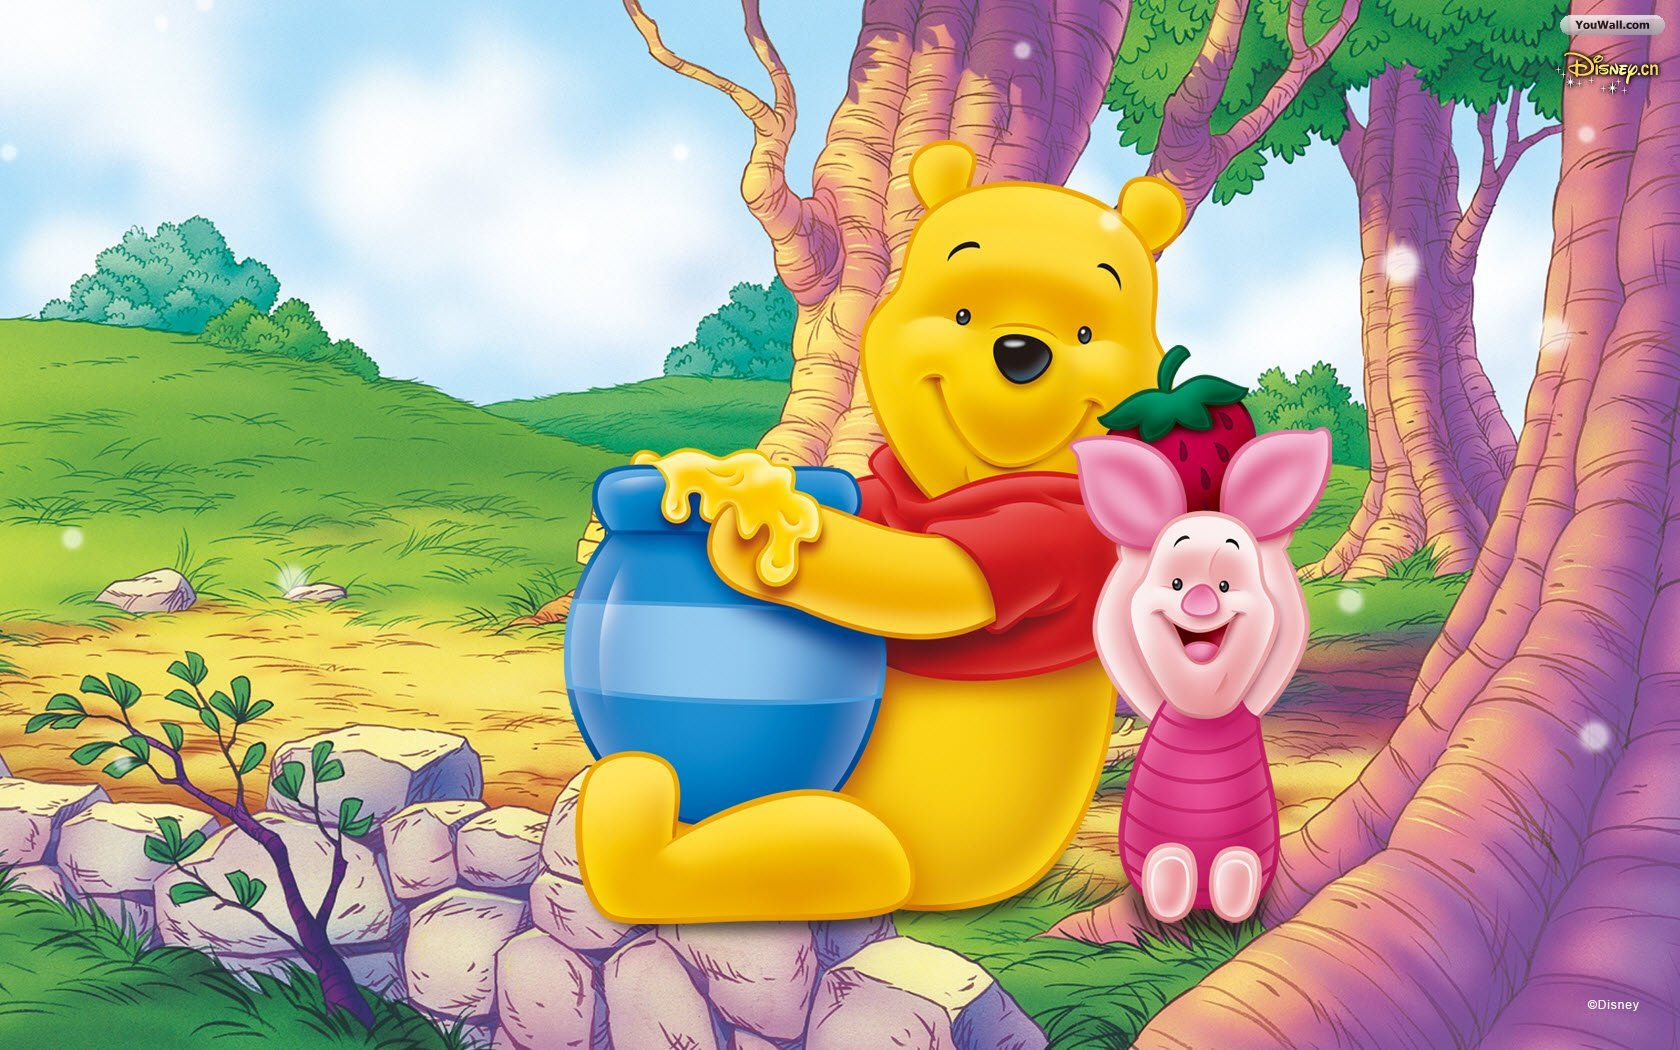 Great Wallpaper Halloween Winnie The Pooh - 3ae8543fcf02680c165e20c935628698  Perfect Image Reference_232278.jpg